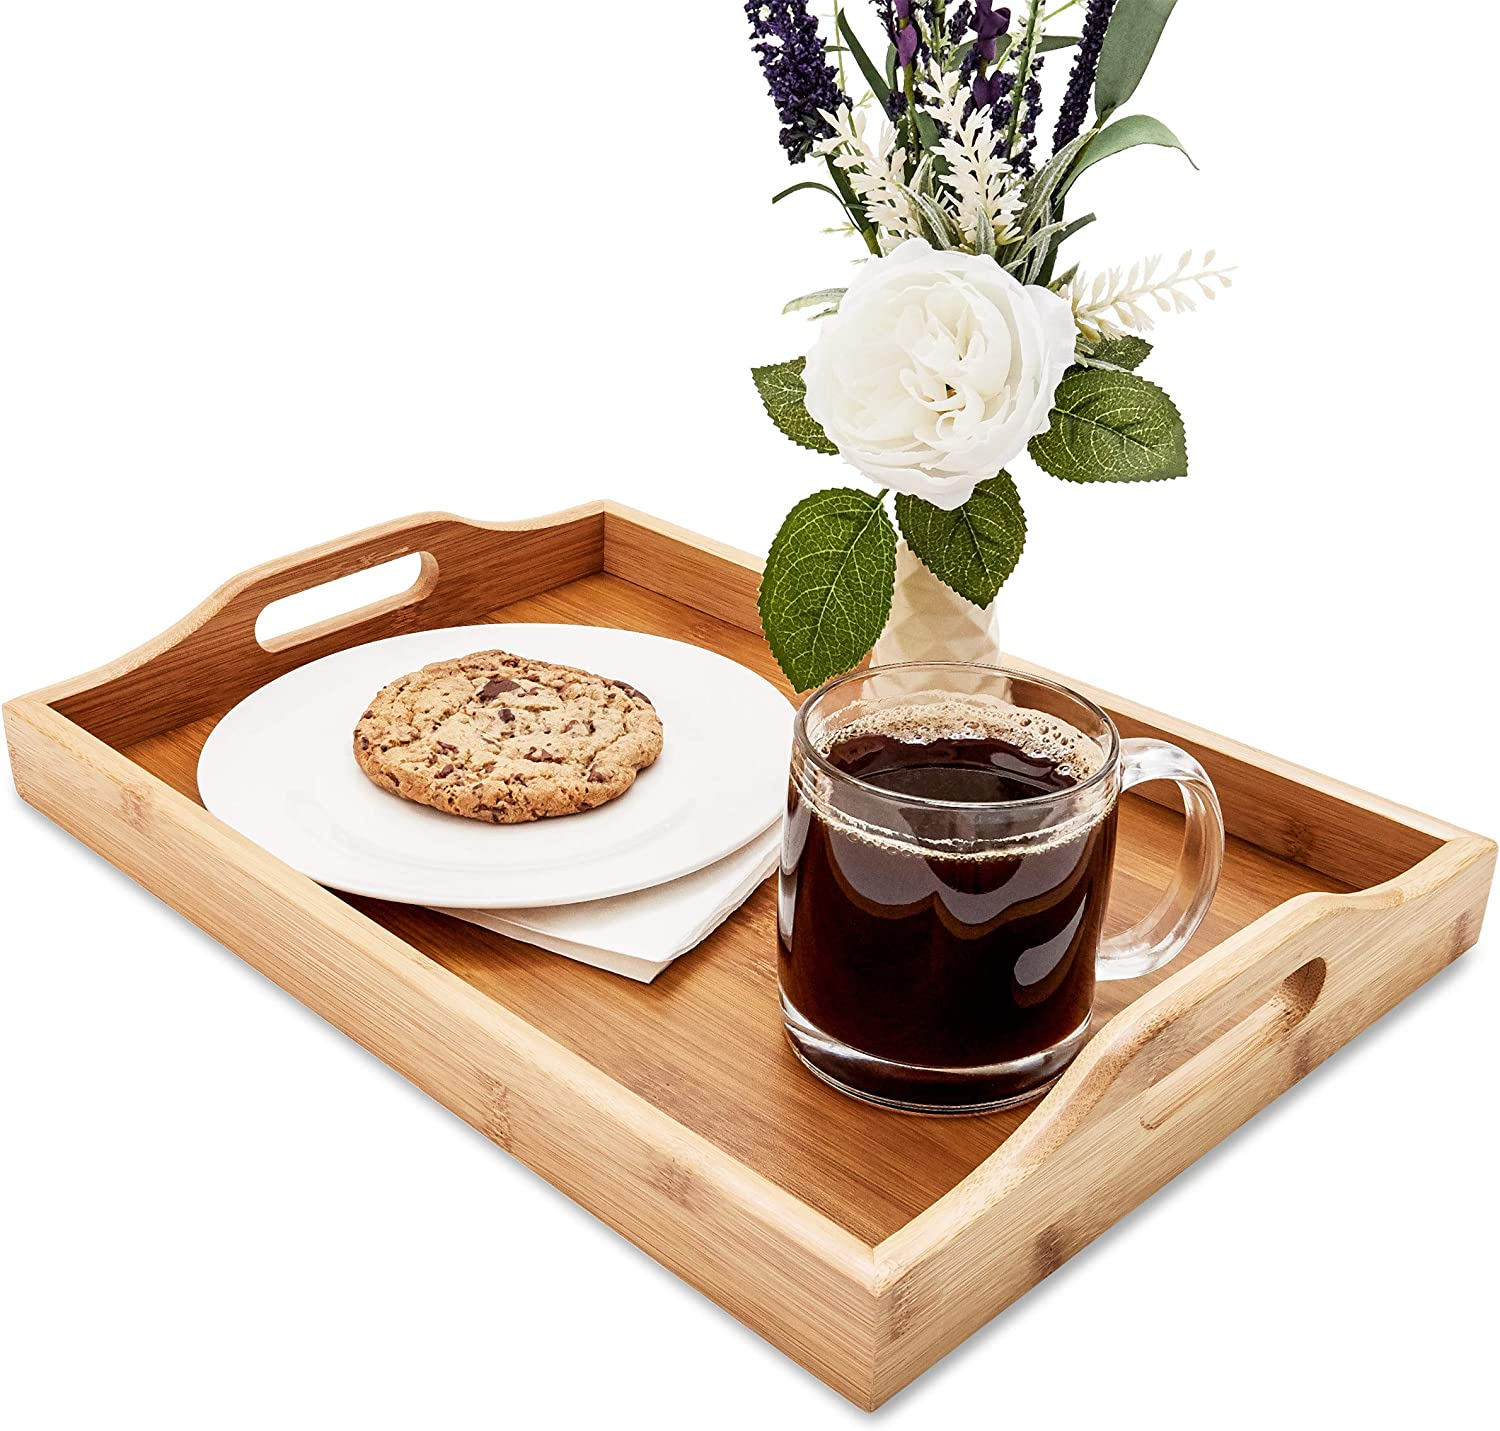 Juvale Wood Food Serving Tray with Handles, 16 x 11 x 2 Inches